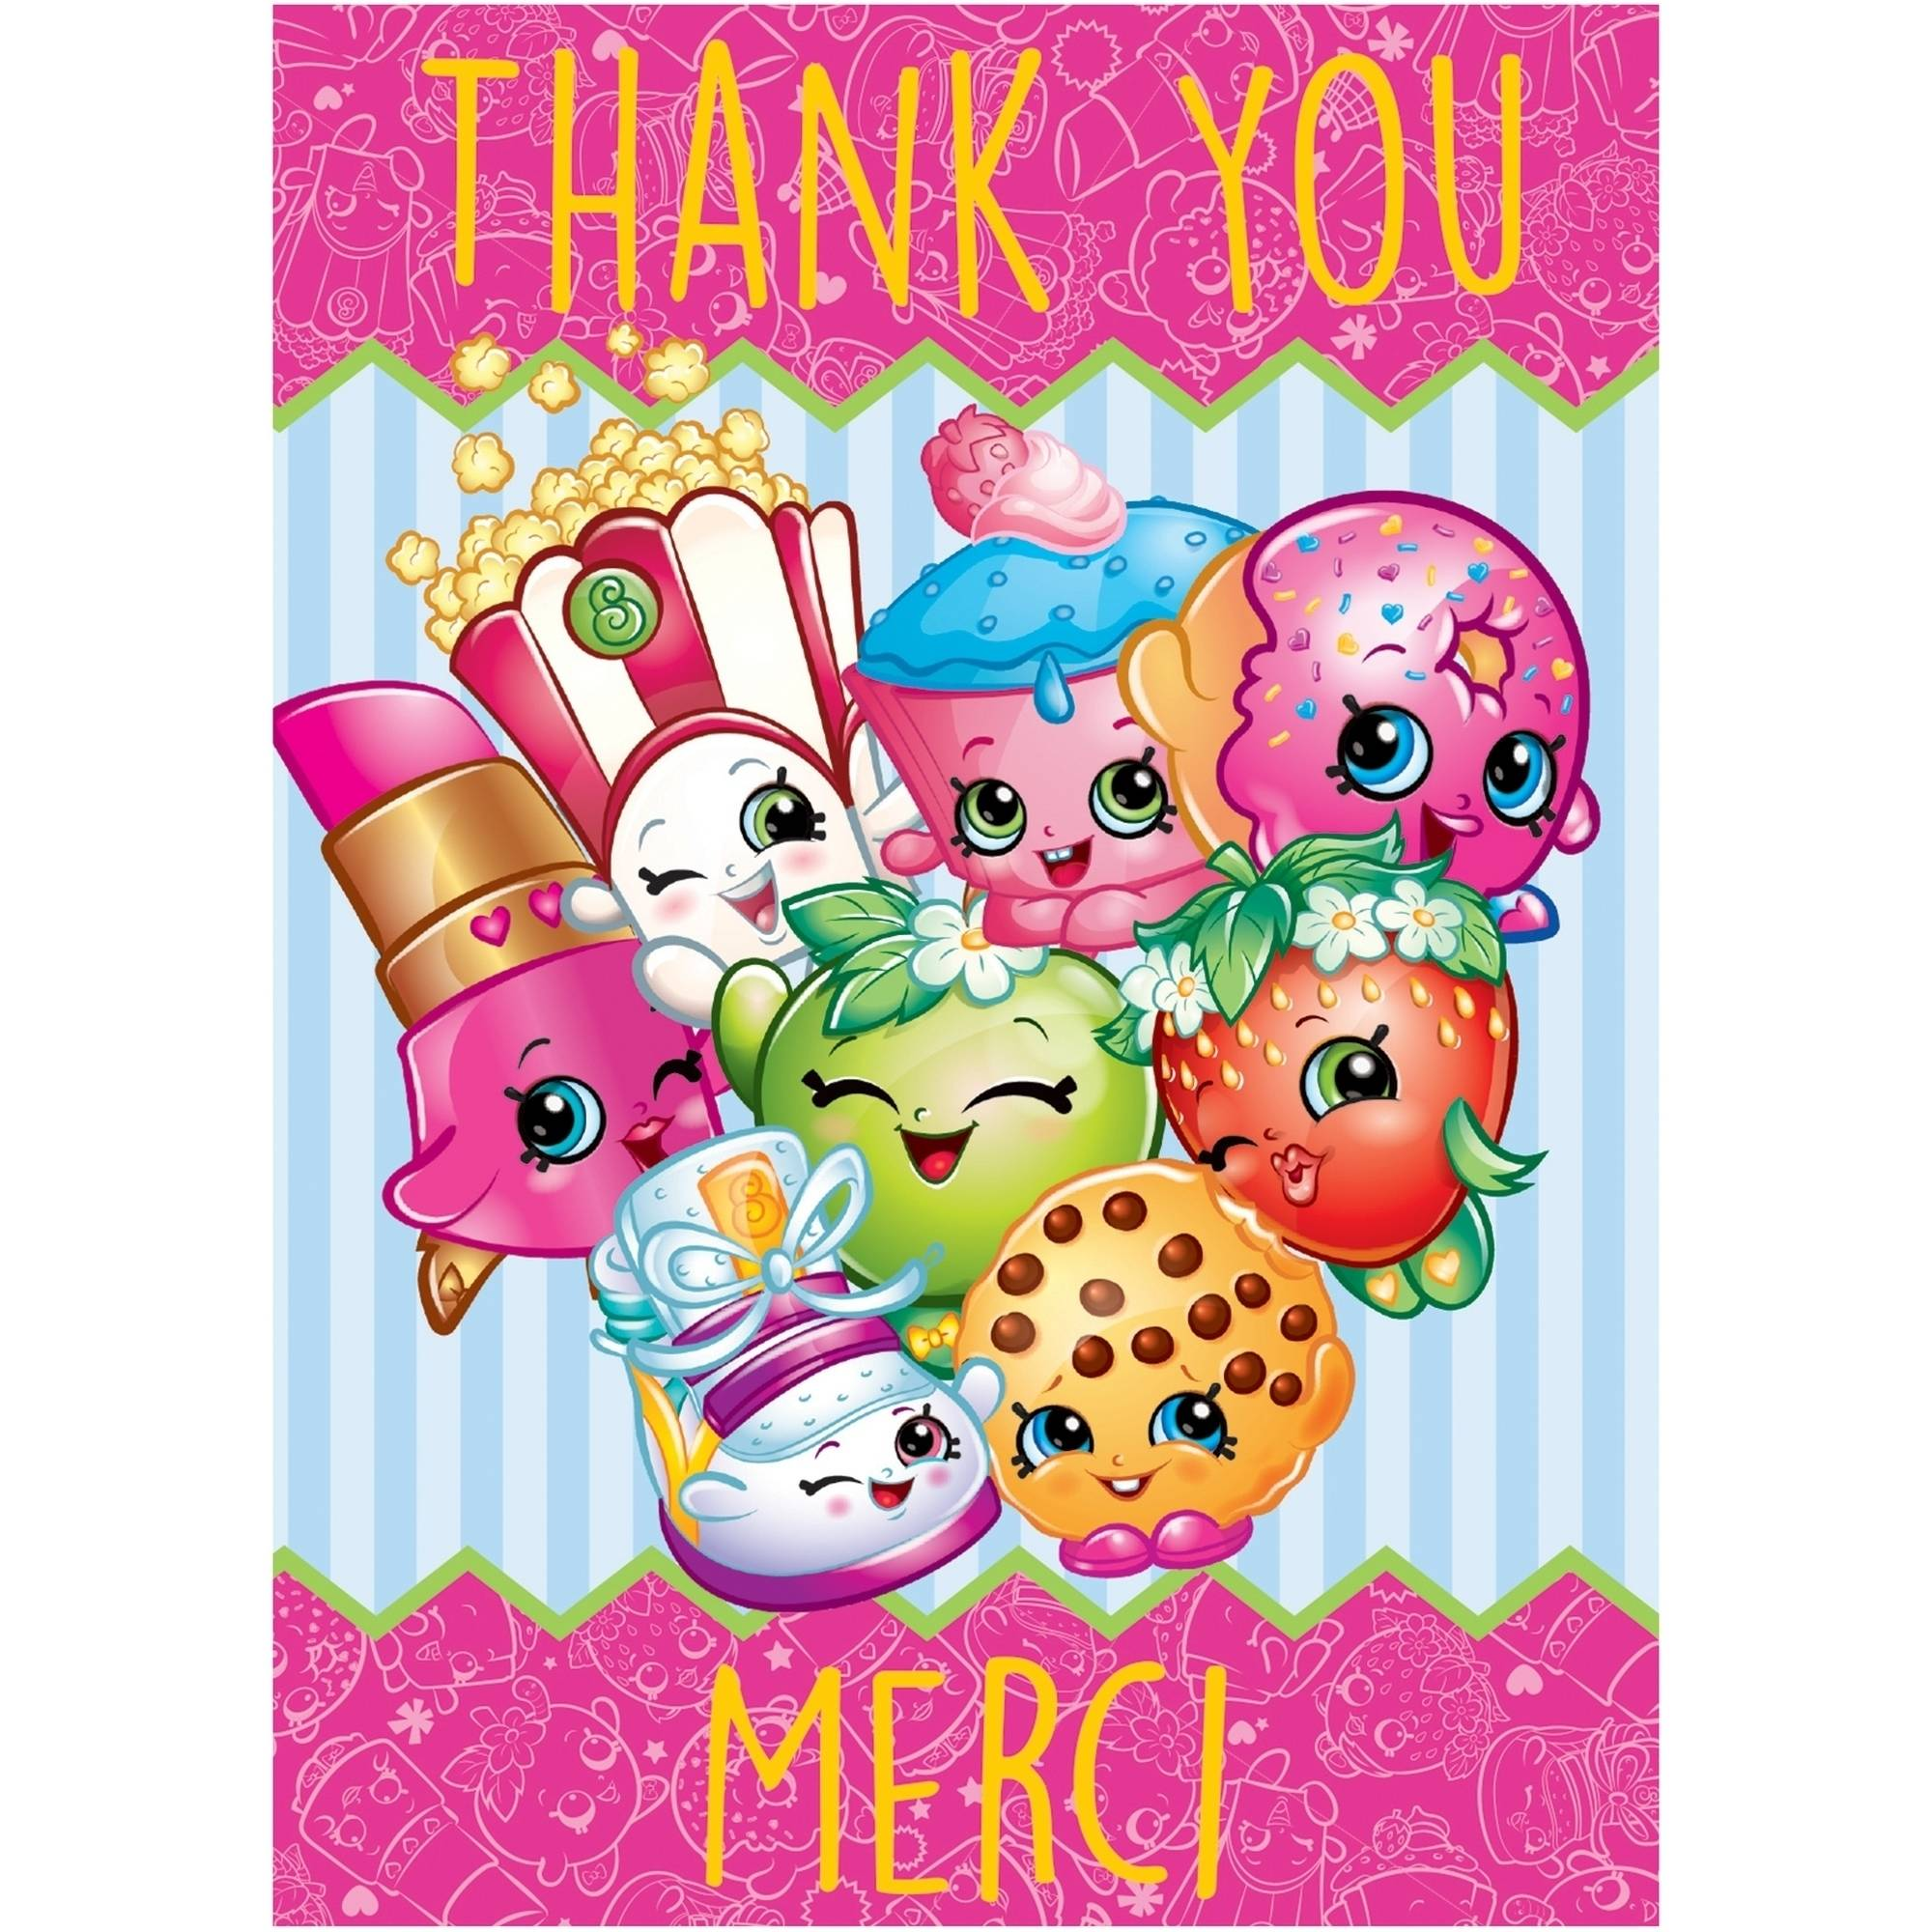 Shopkins Thank You Notes, 8ct